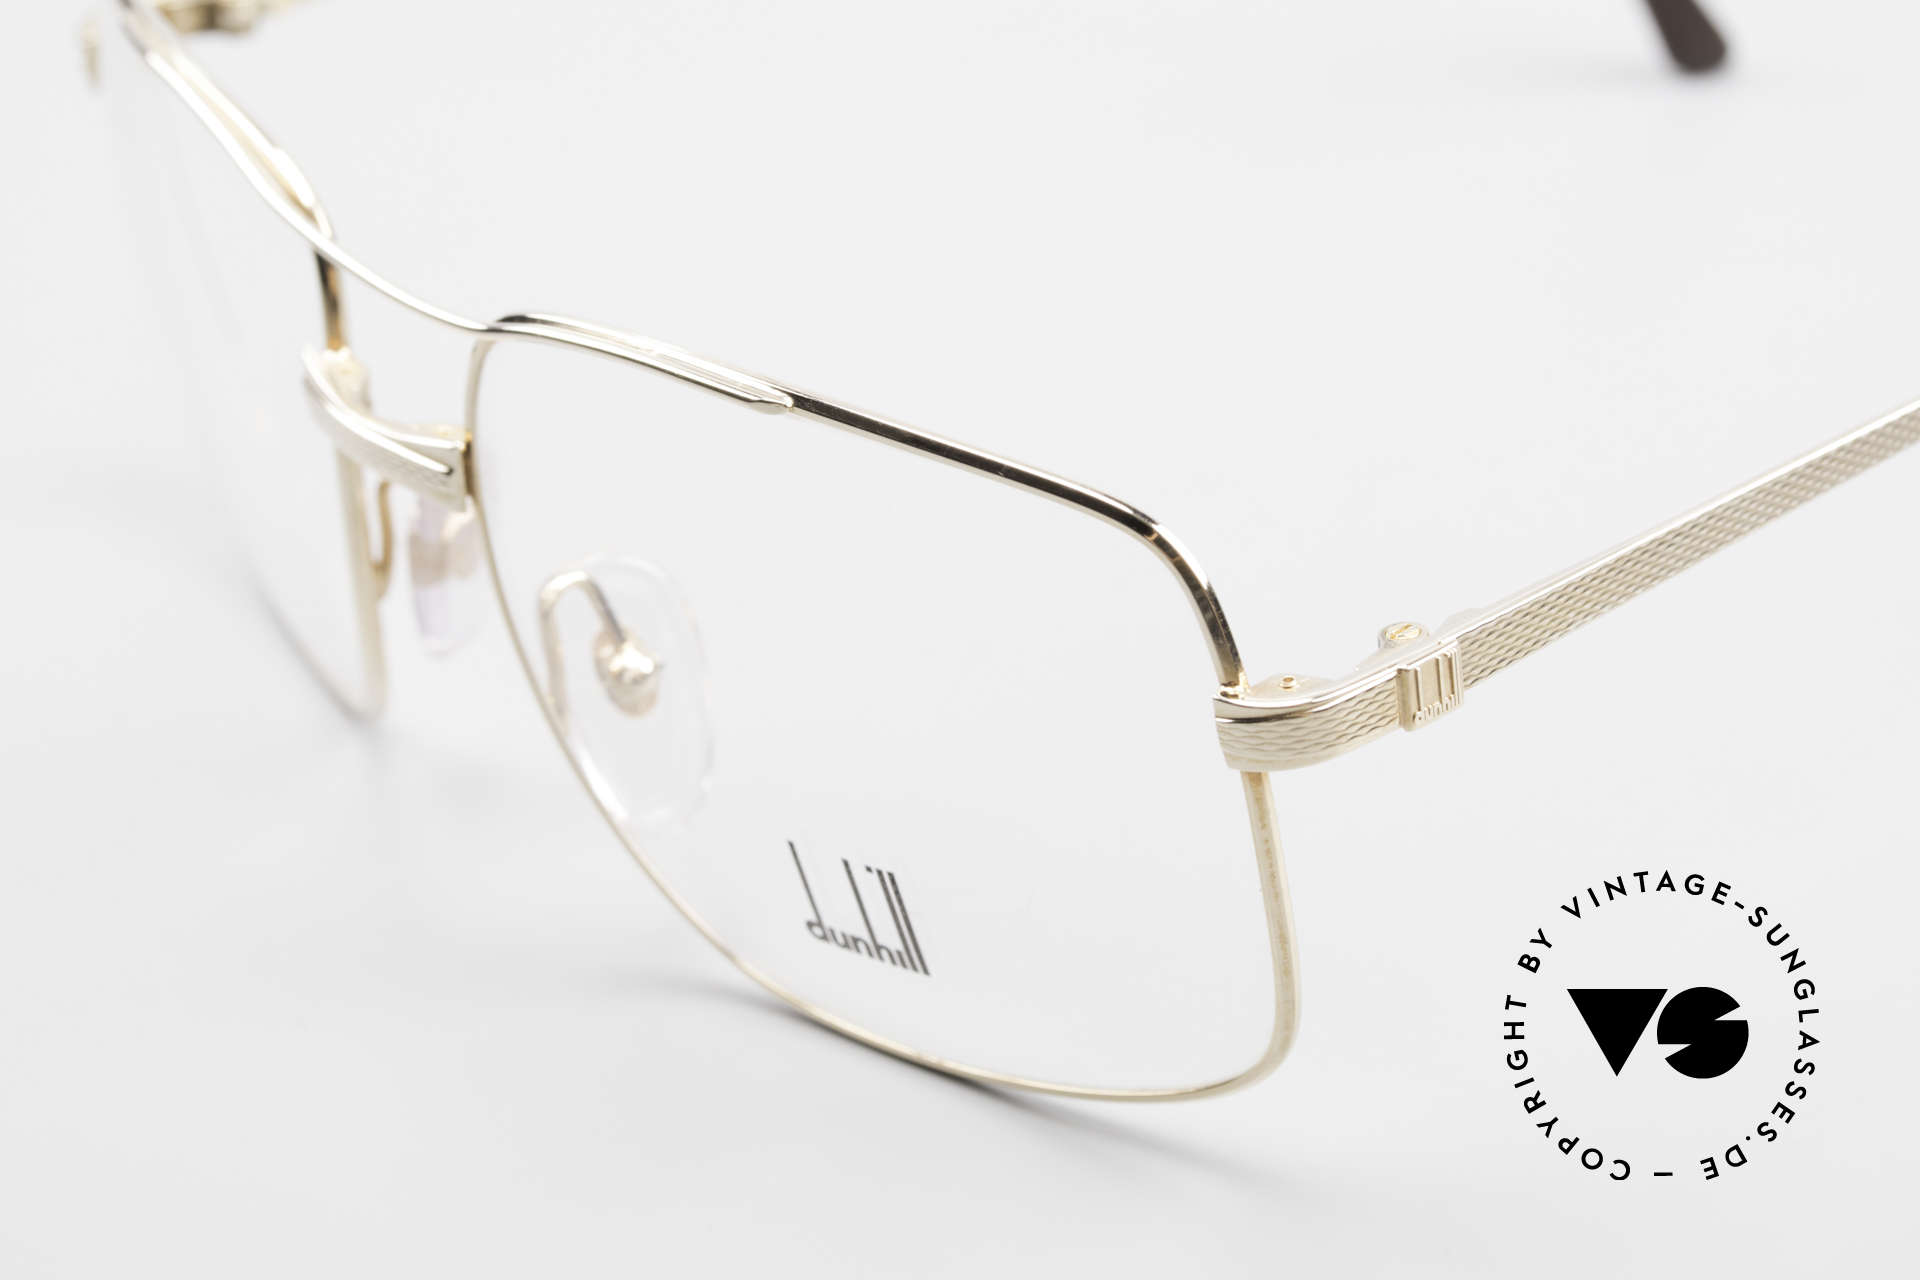 Dunhill 6048 Gold Plated 80's Eyeglasses, gold-plated frame (built to last), You must feel this!, Made for Men